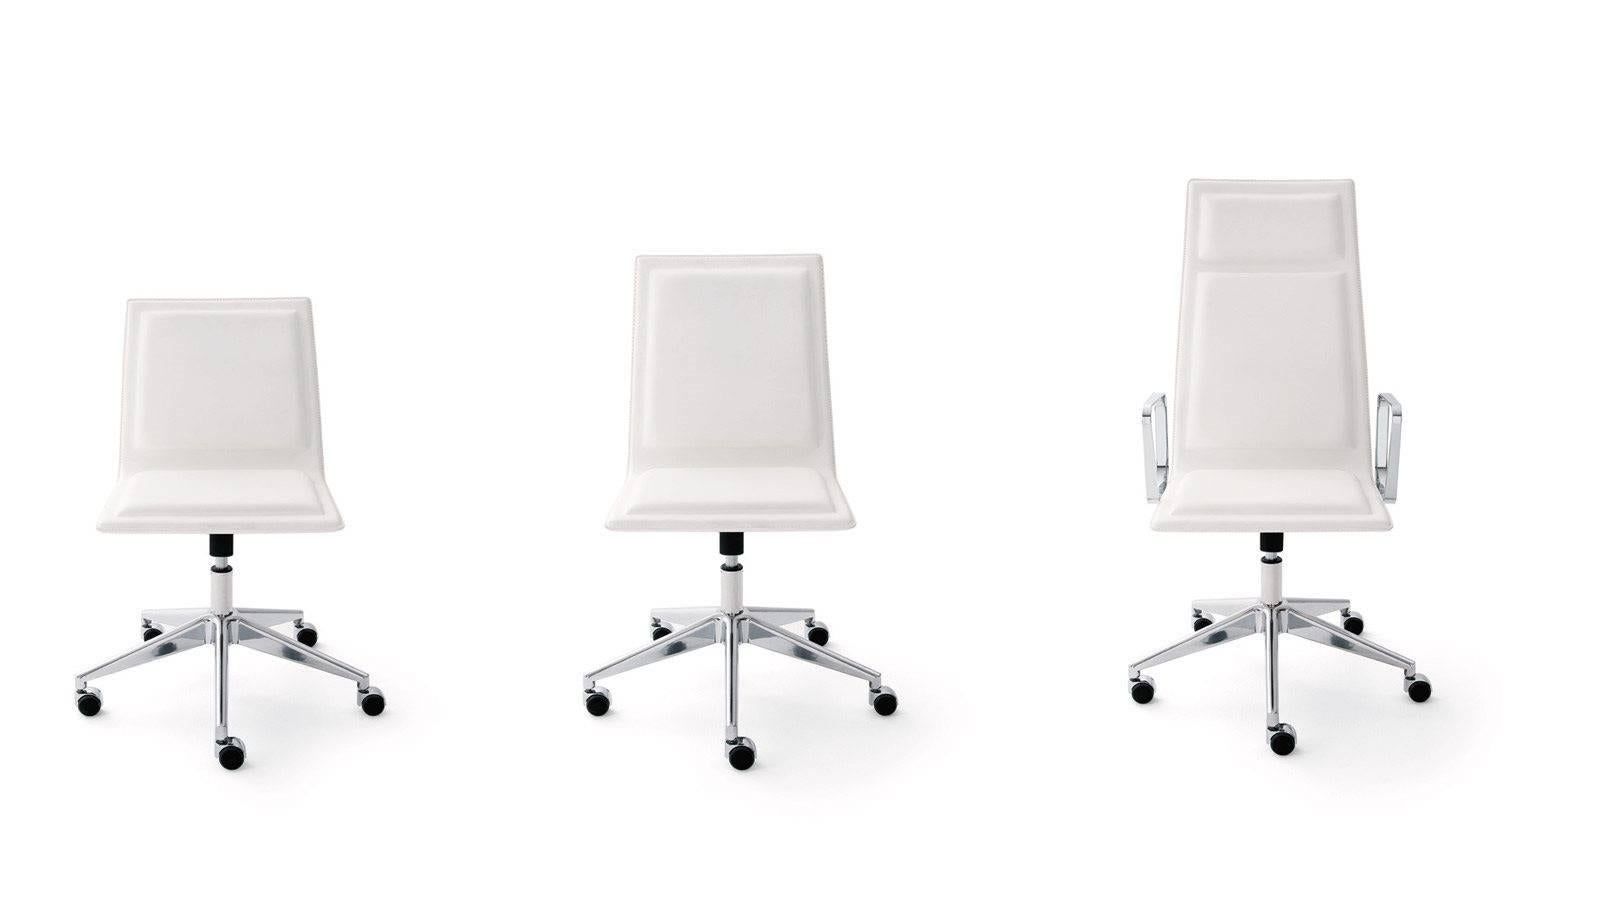 Modern OFX 09 Ergonomic Office Chair With Or Without Castors By Gallotti U0026  Radice For Sale